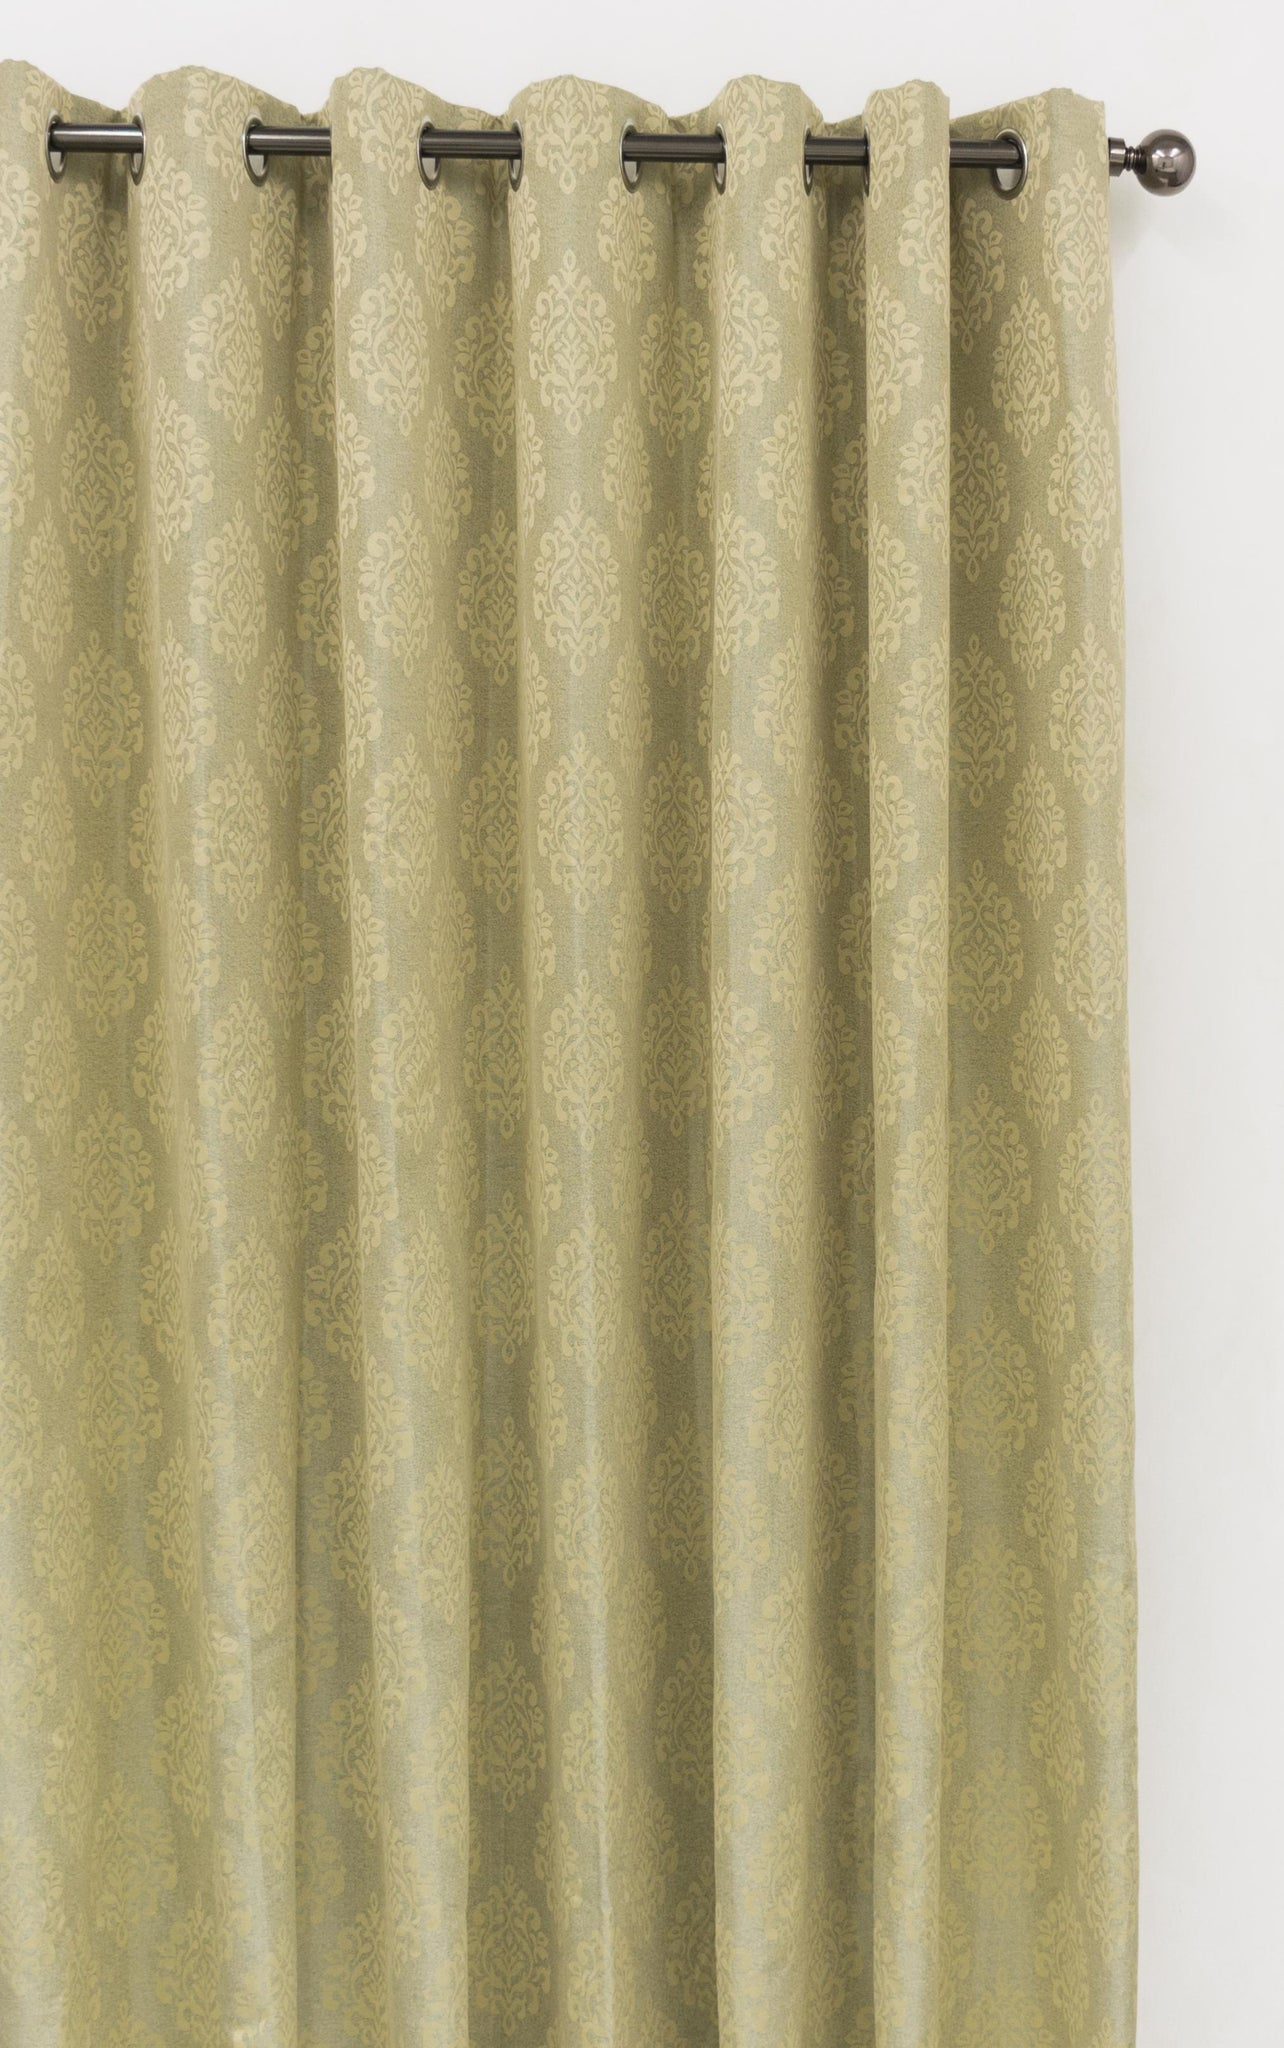 270x250cm GOLDEA EYELET CURTAIN